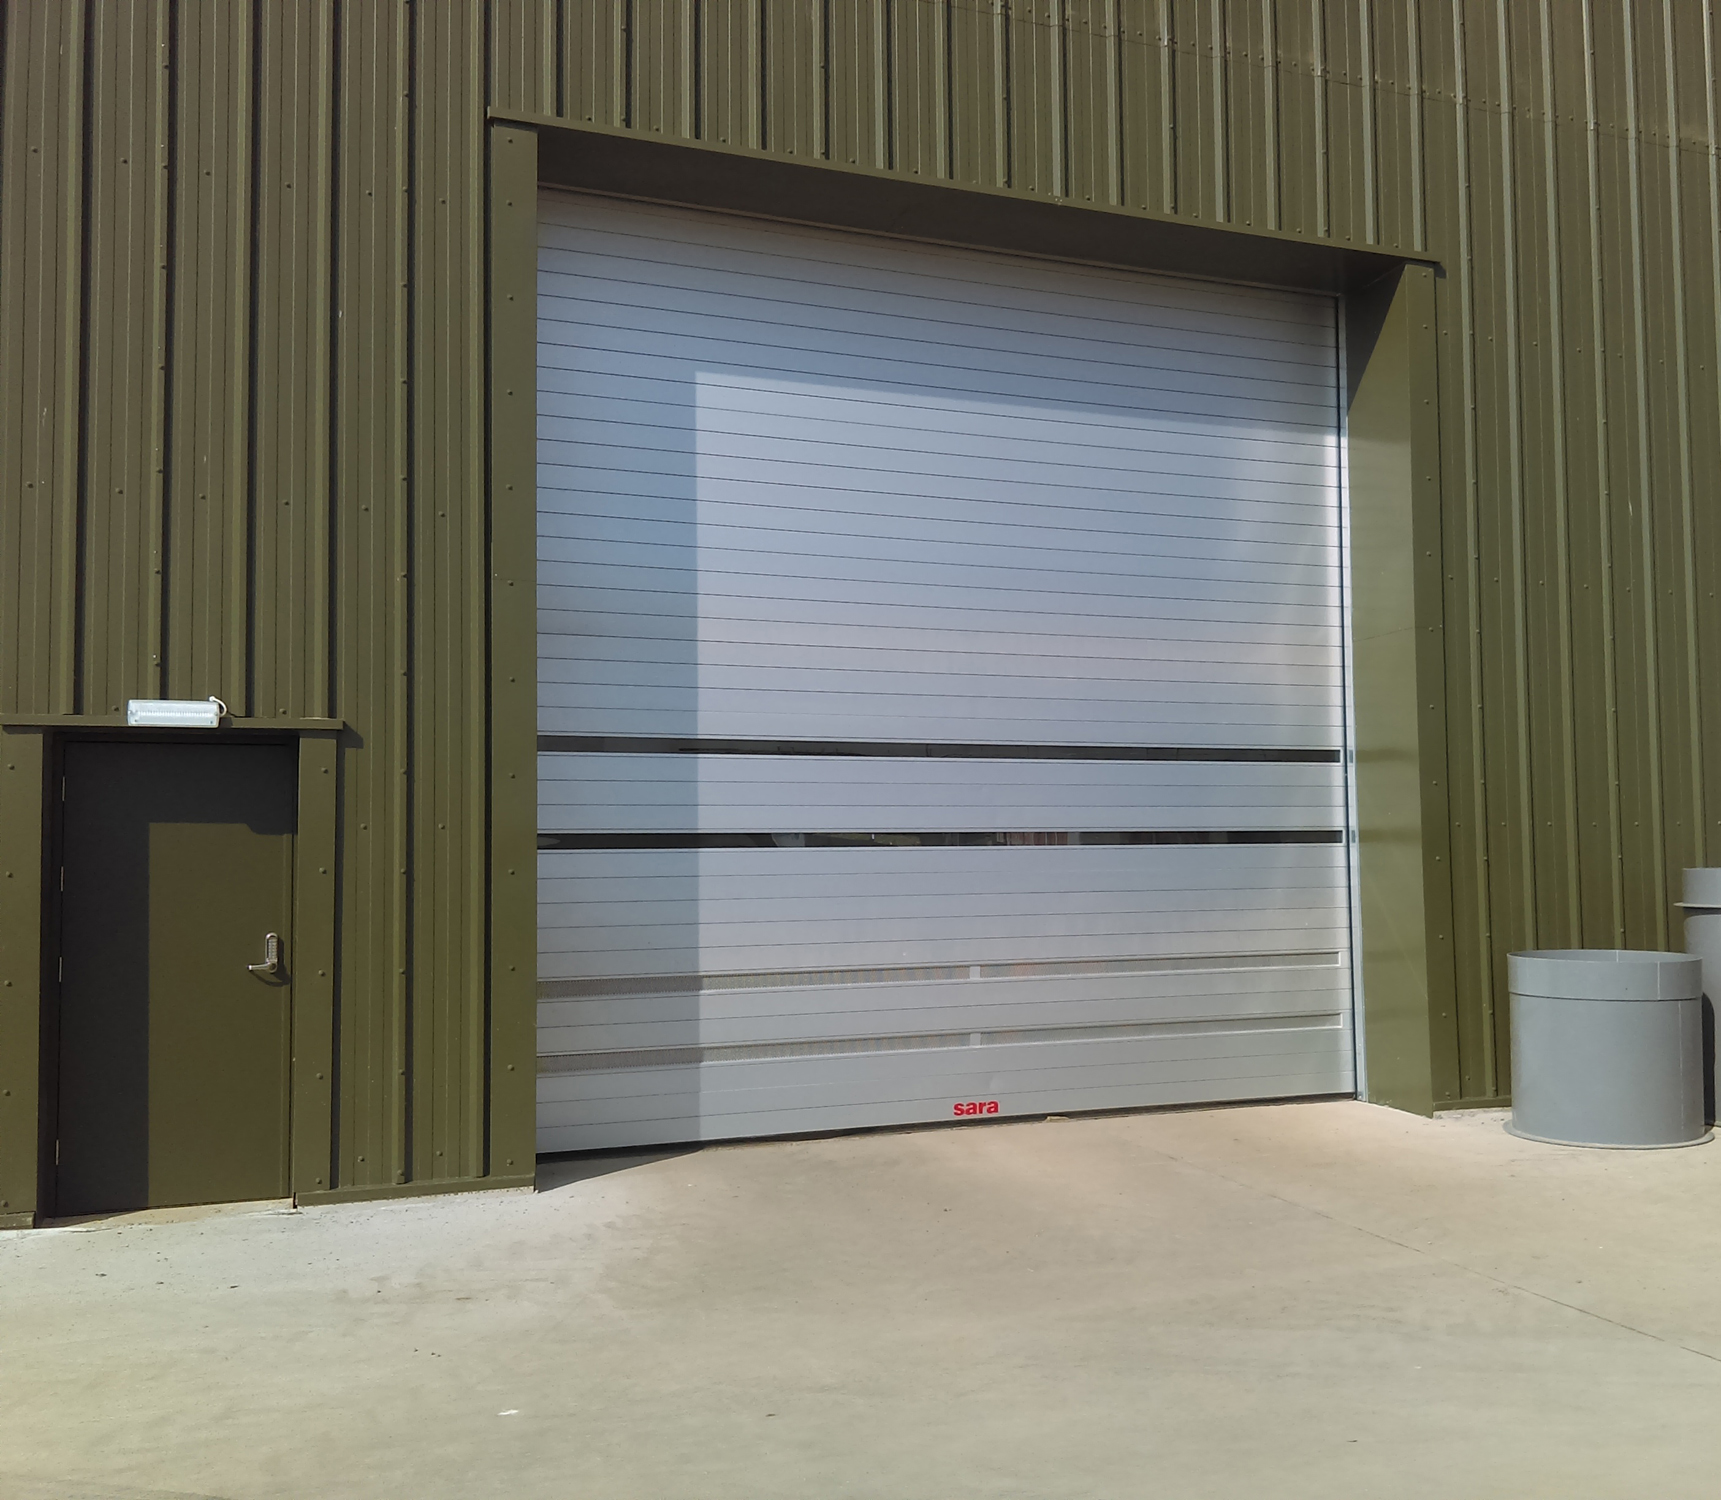 High speed doors start energy from food waste processes